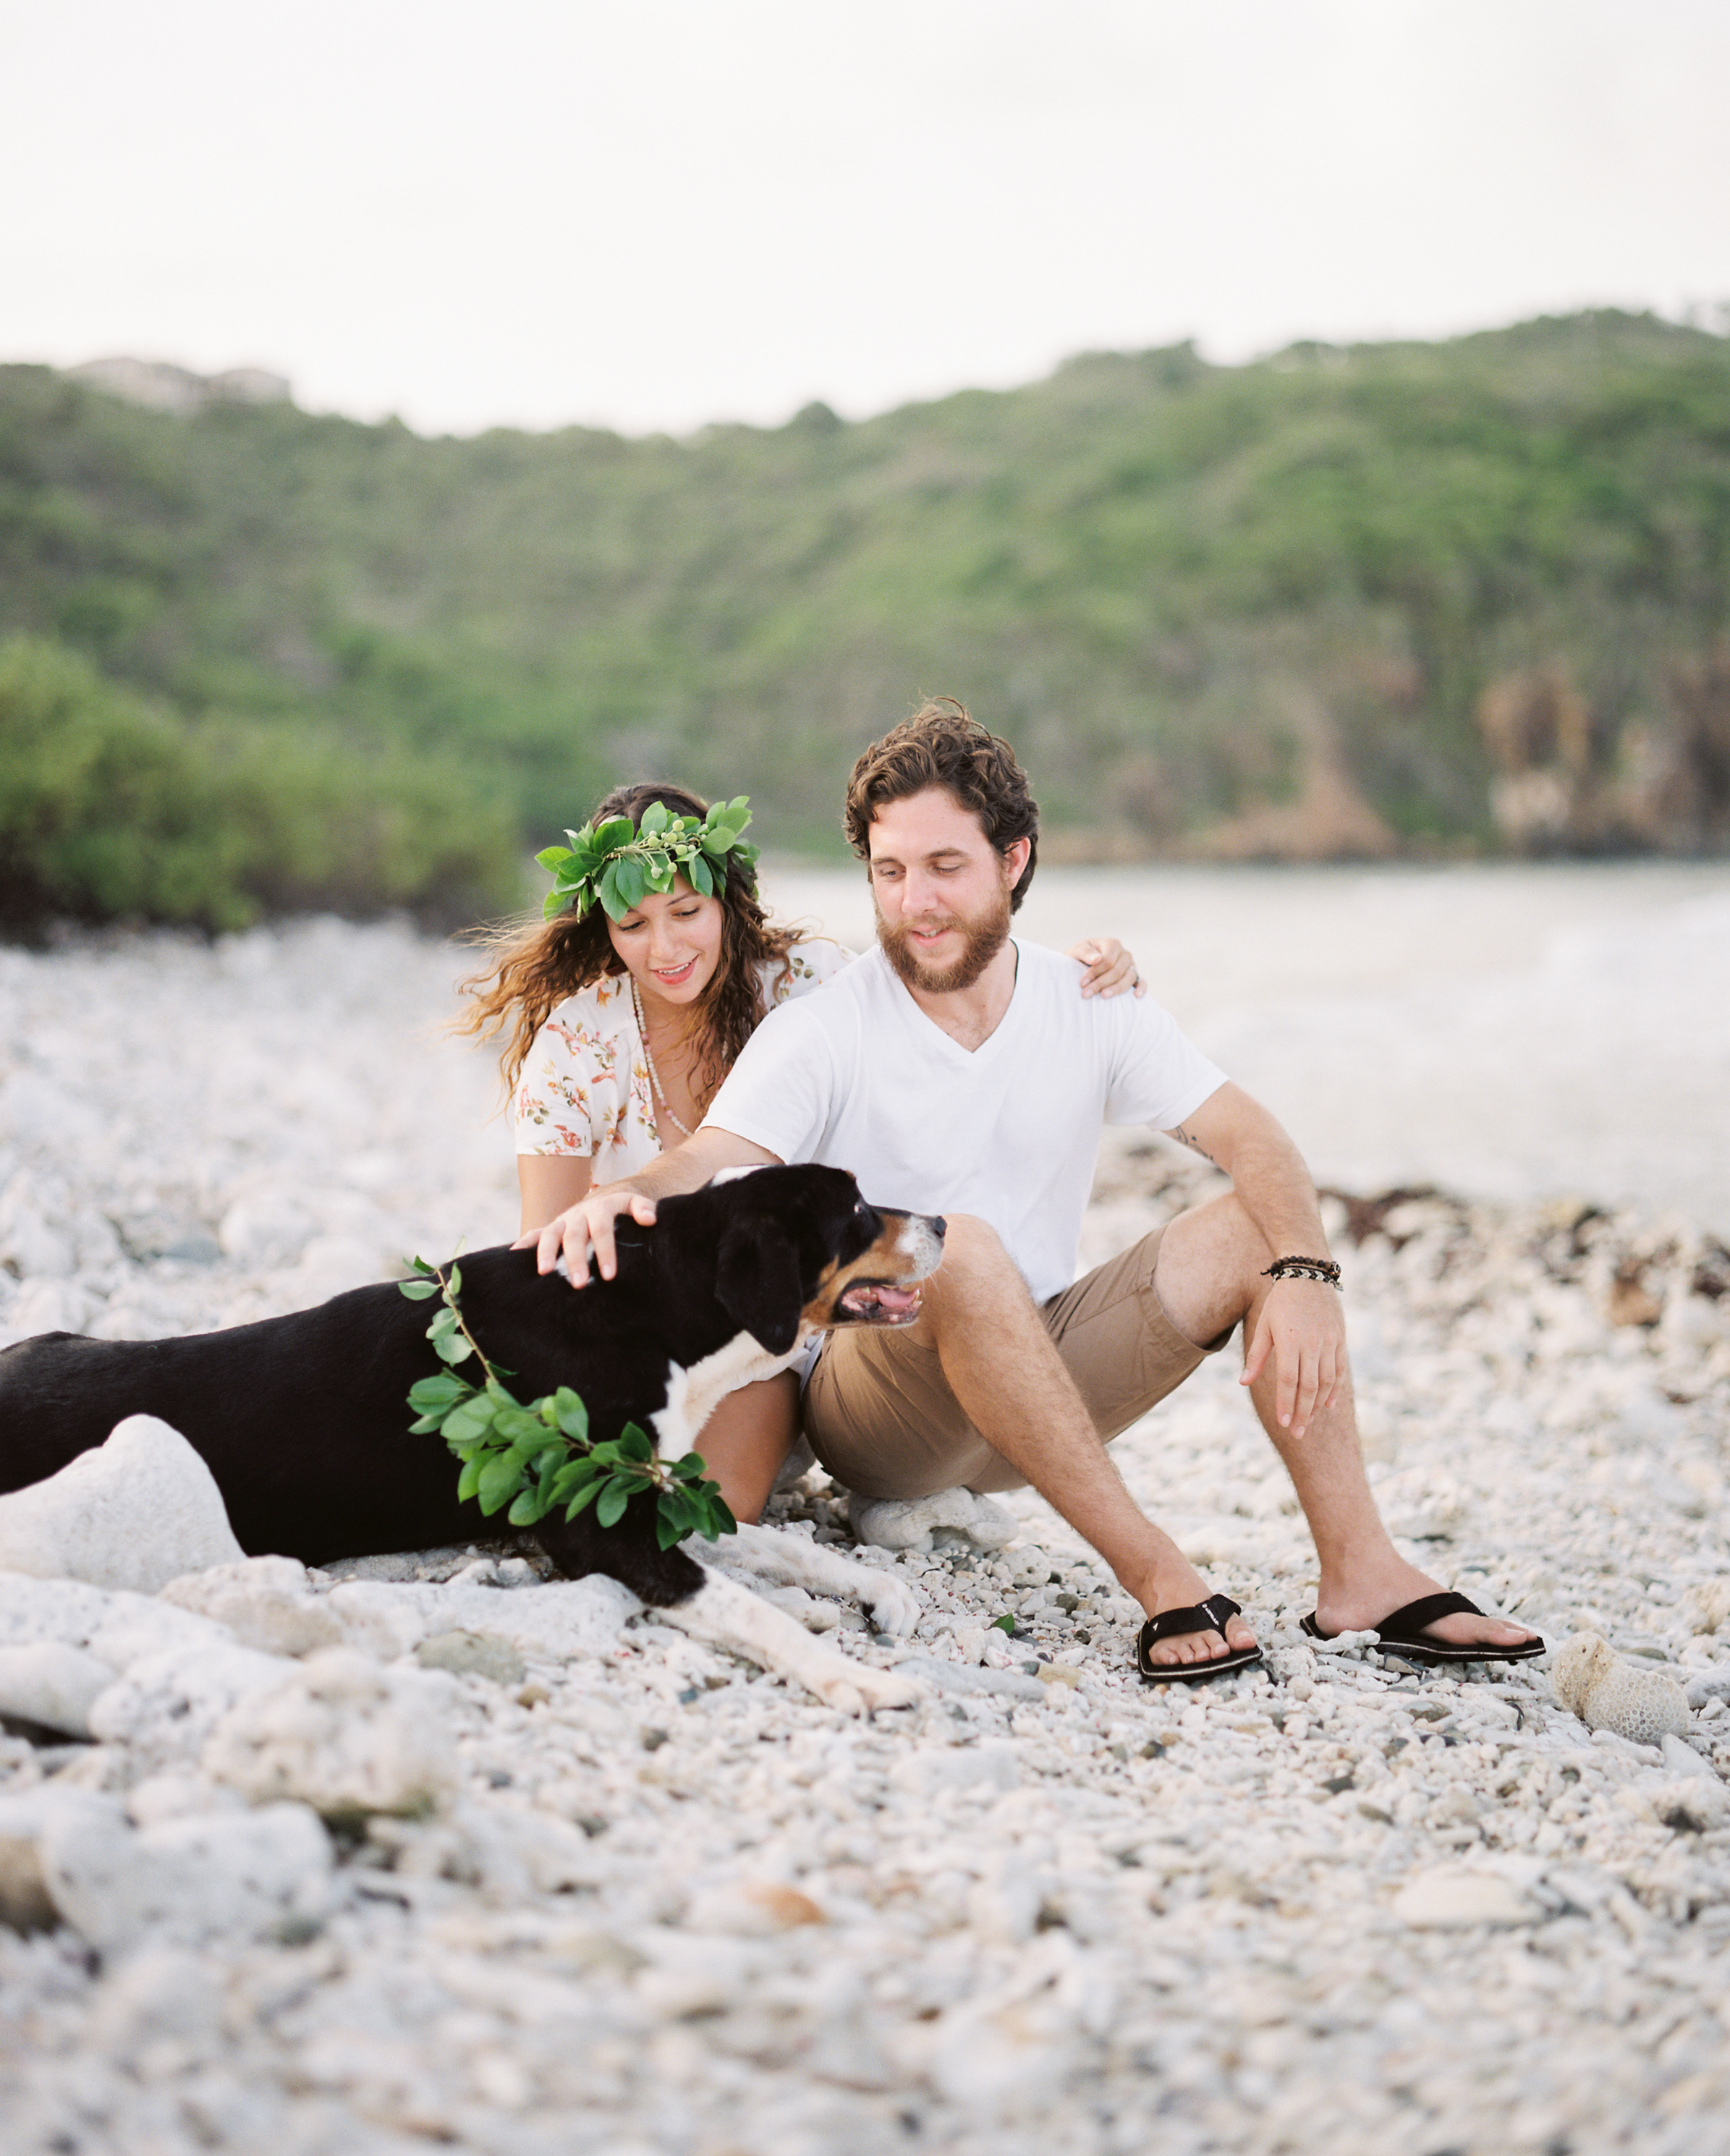 usvi water island, st. thomas tropical beach engagement photo